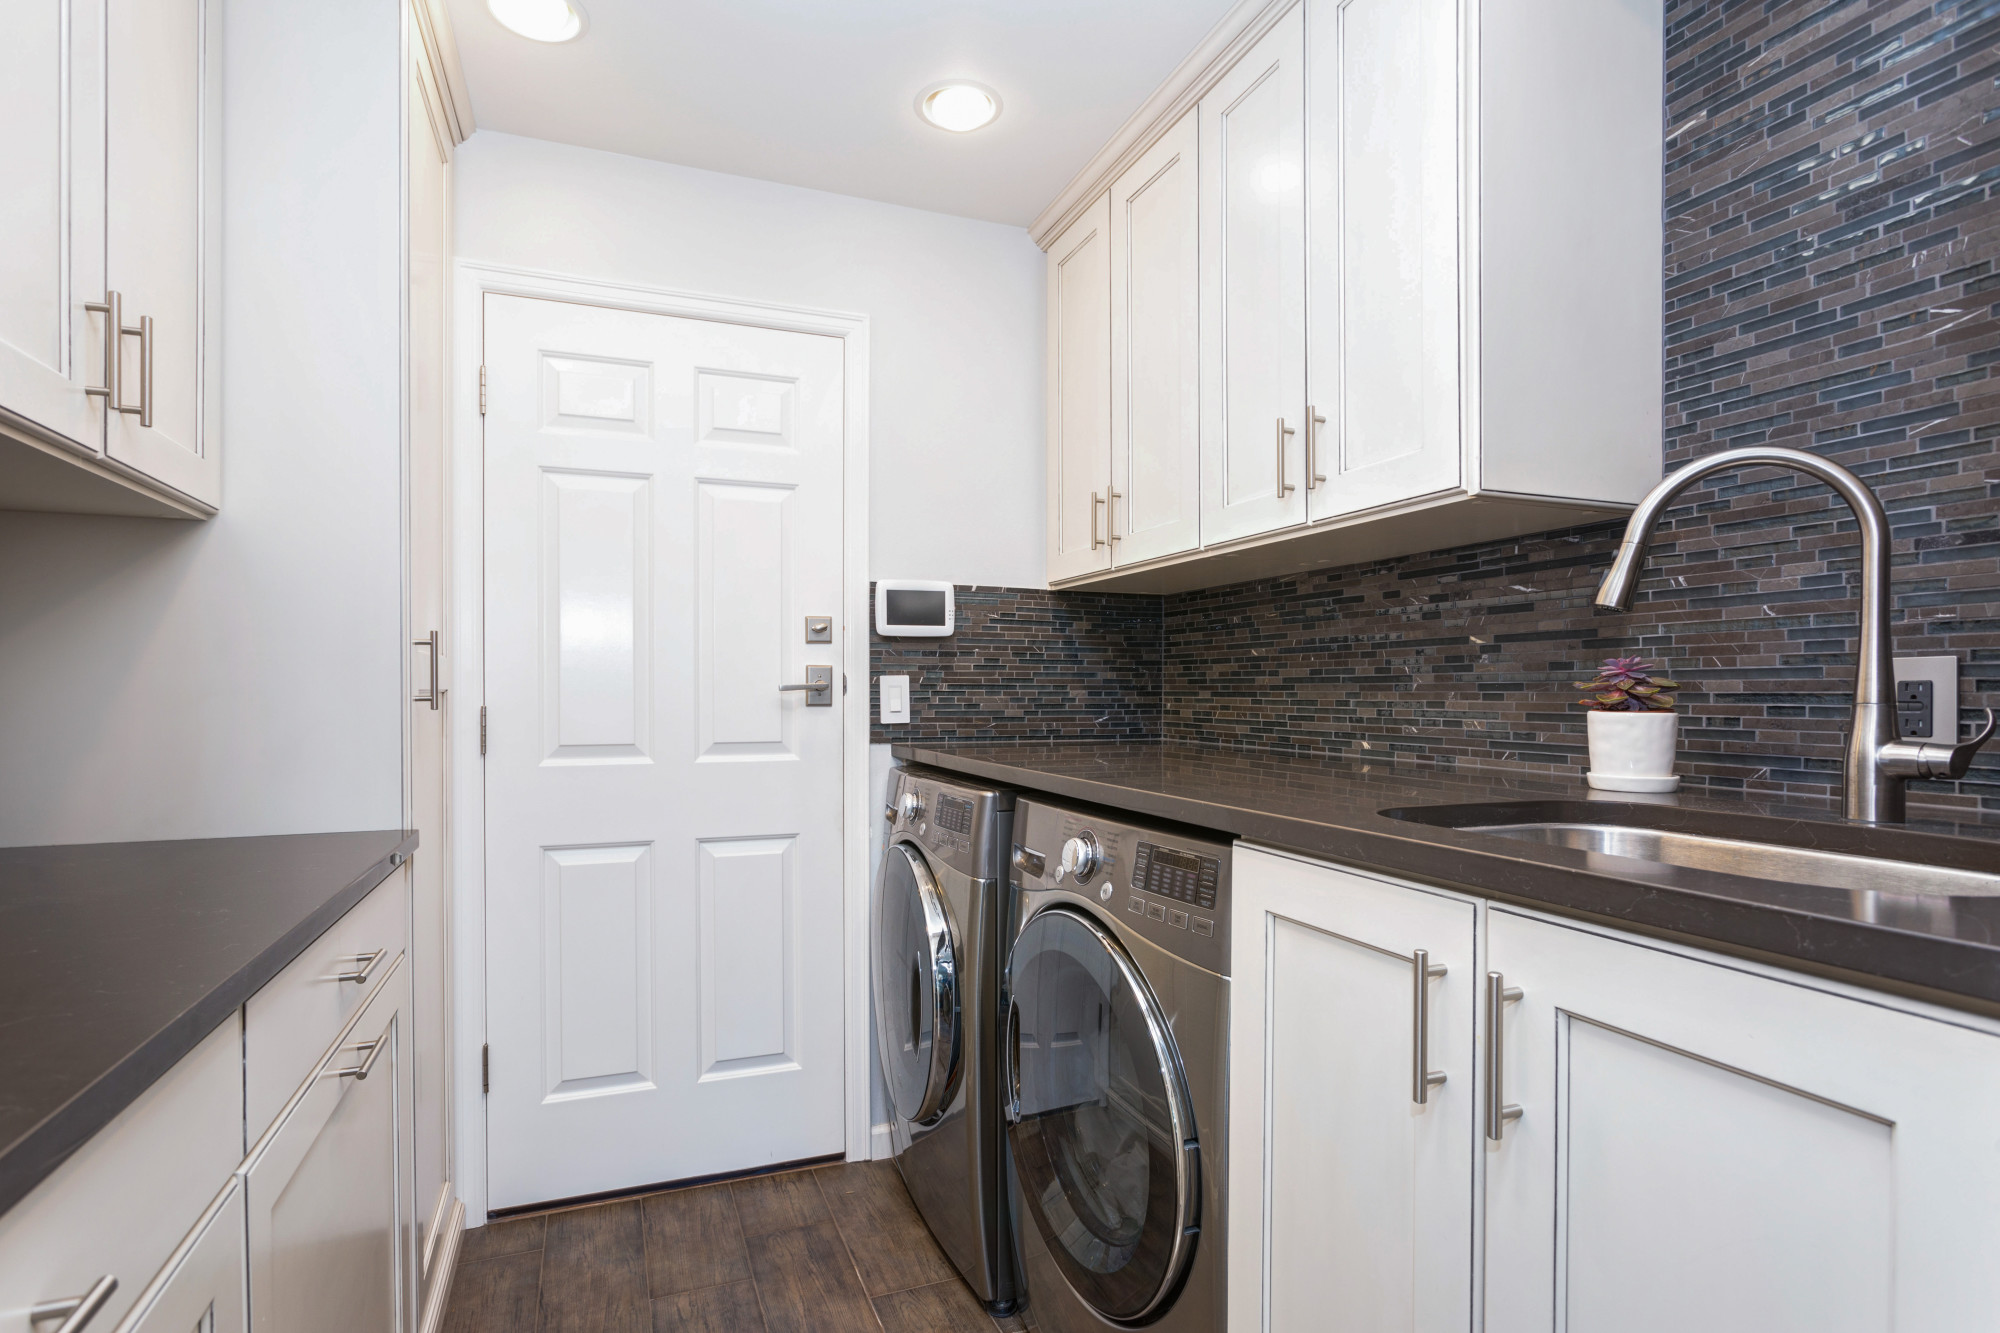 Brilliant Laundry Room Renovation Ideas That Are Small Budget Friendly   Interior Design Tours